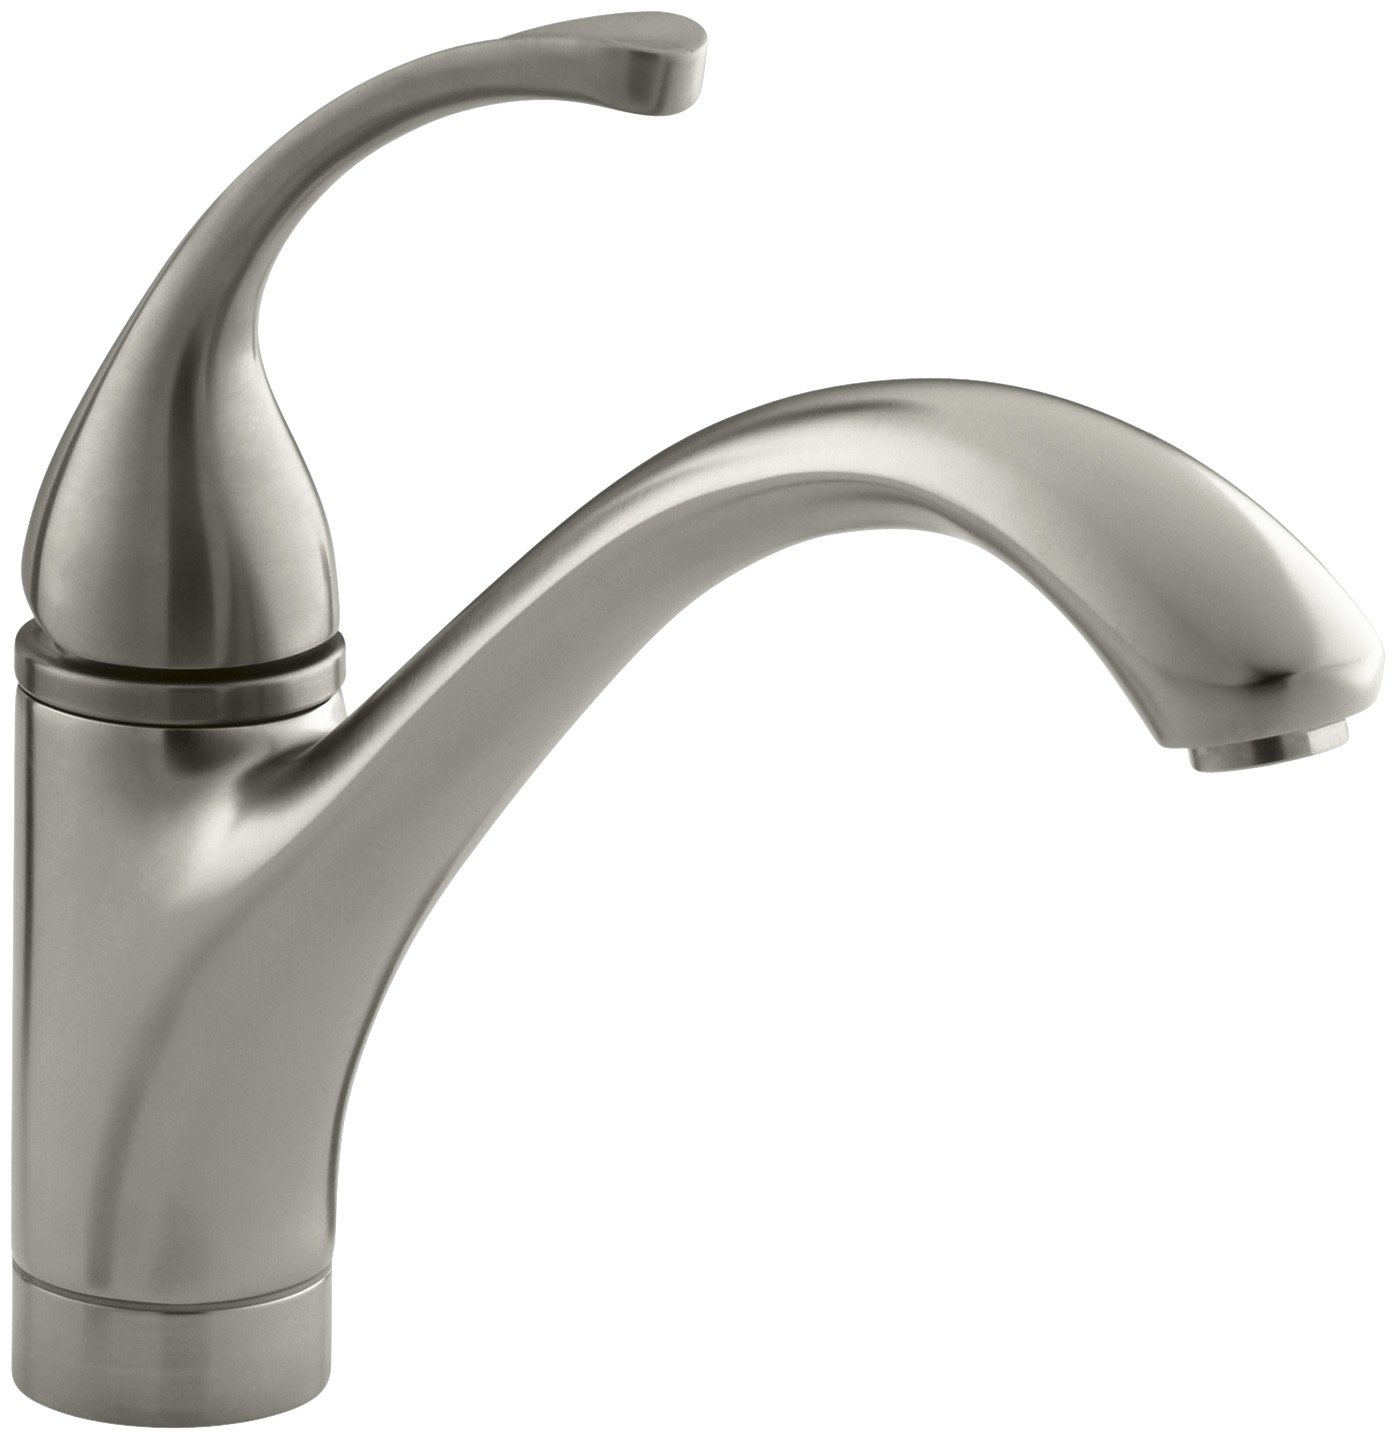 Good KOHLER K 10415 VS Forte Single Control Kitchen Sink Faucet With Lever  Handle, Vibrant Stainless   Touch On Kitchen Sink Faucets   Amazon.com